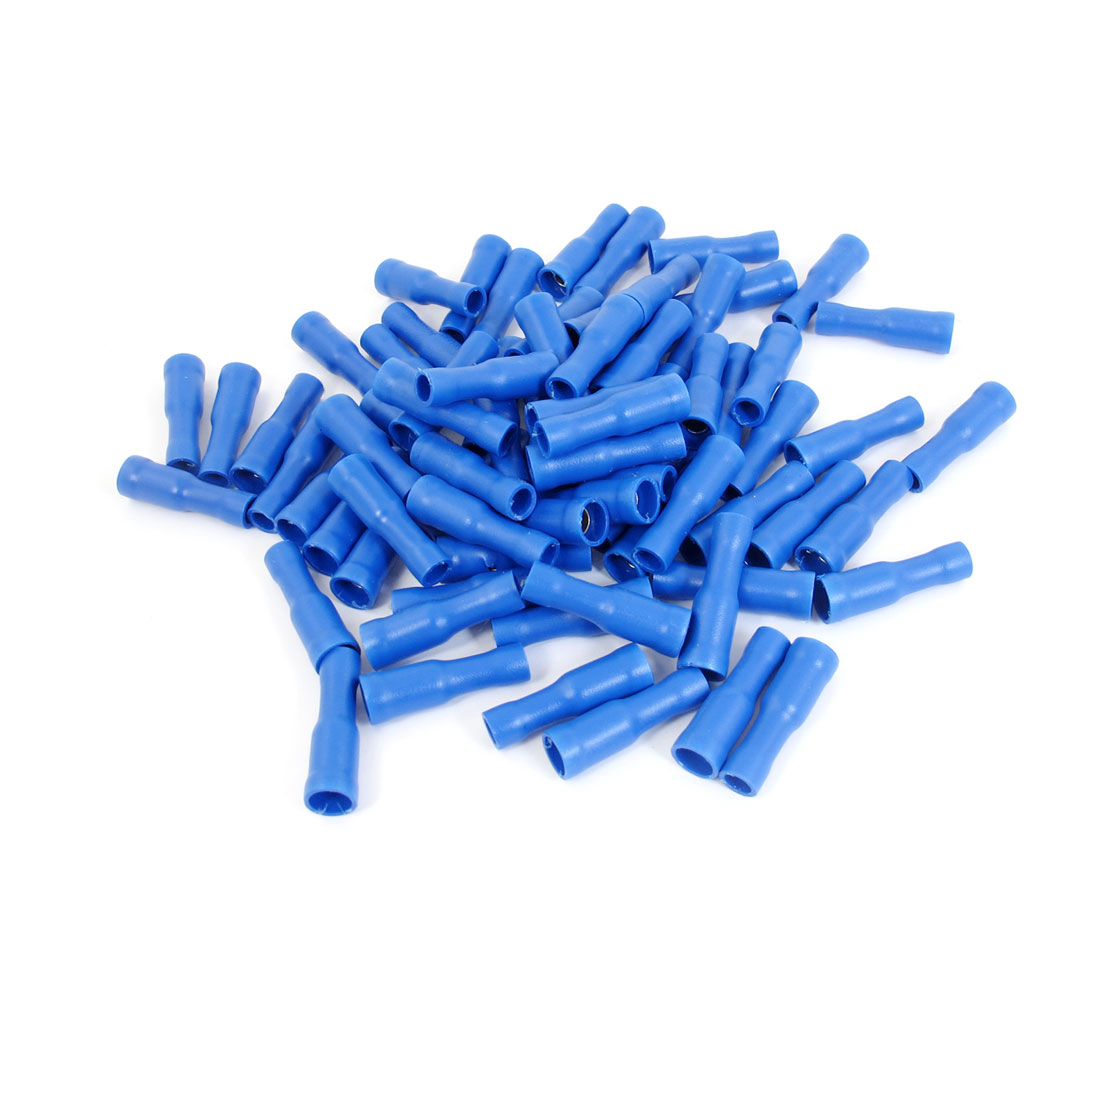 FRD2-156 A.W.G 22-16 Electric Cable Pre Insulated Terminal Joint Blue 75pcs